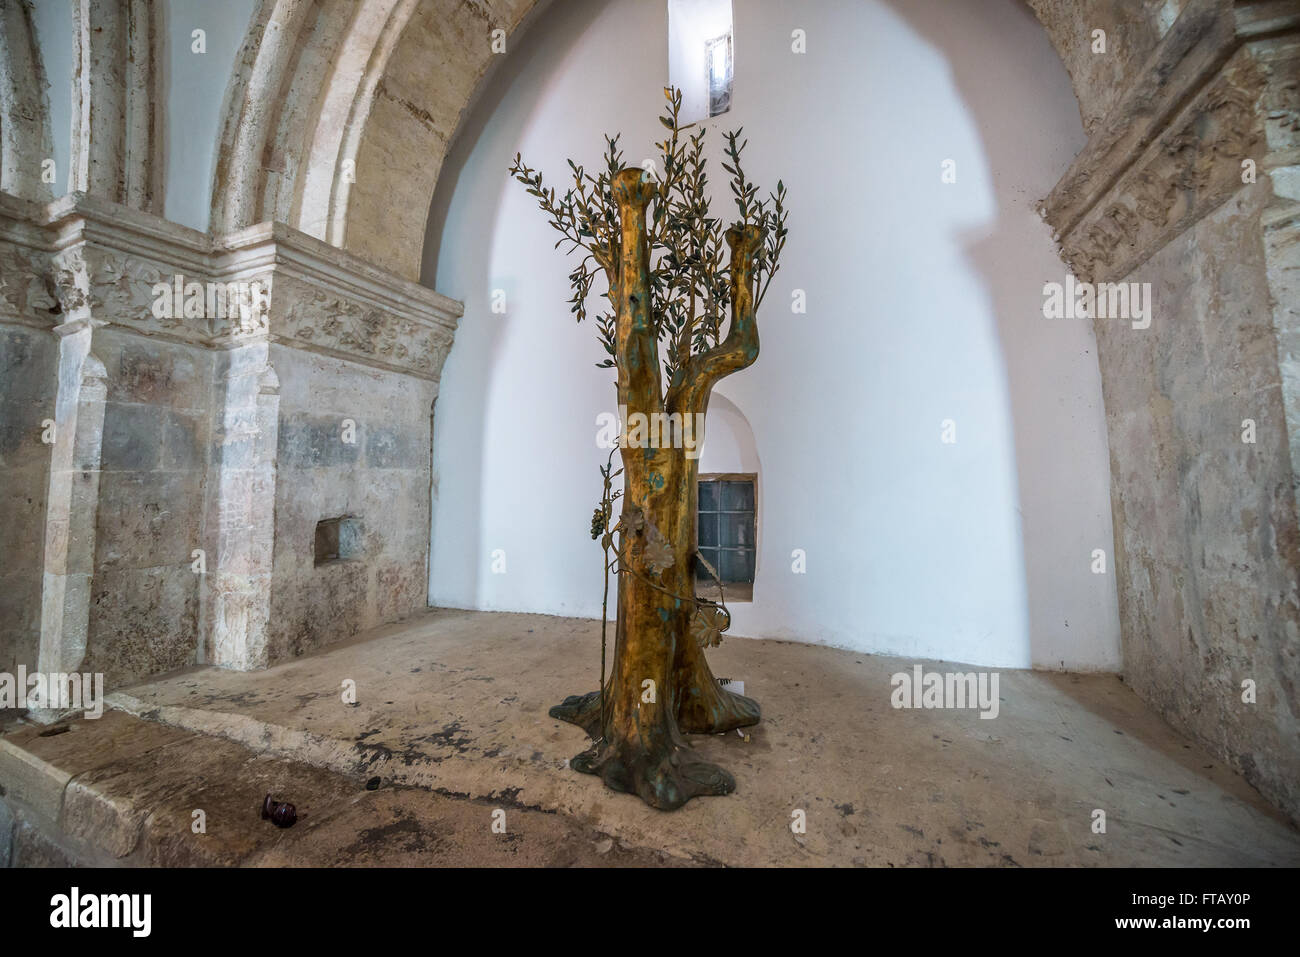 Olive Tree Sculpture In Cenacle Upper Room Held To Be A